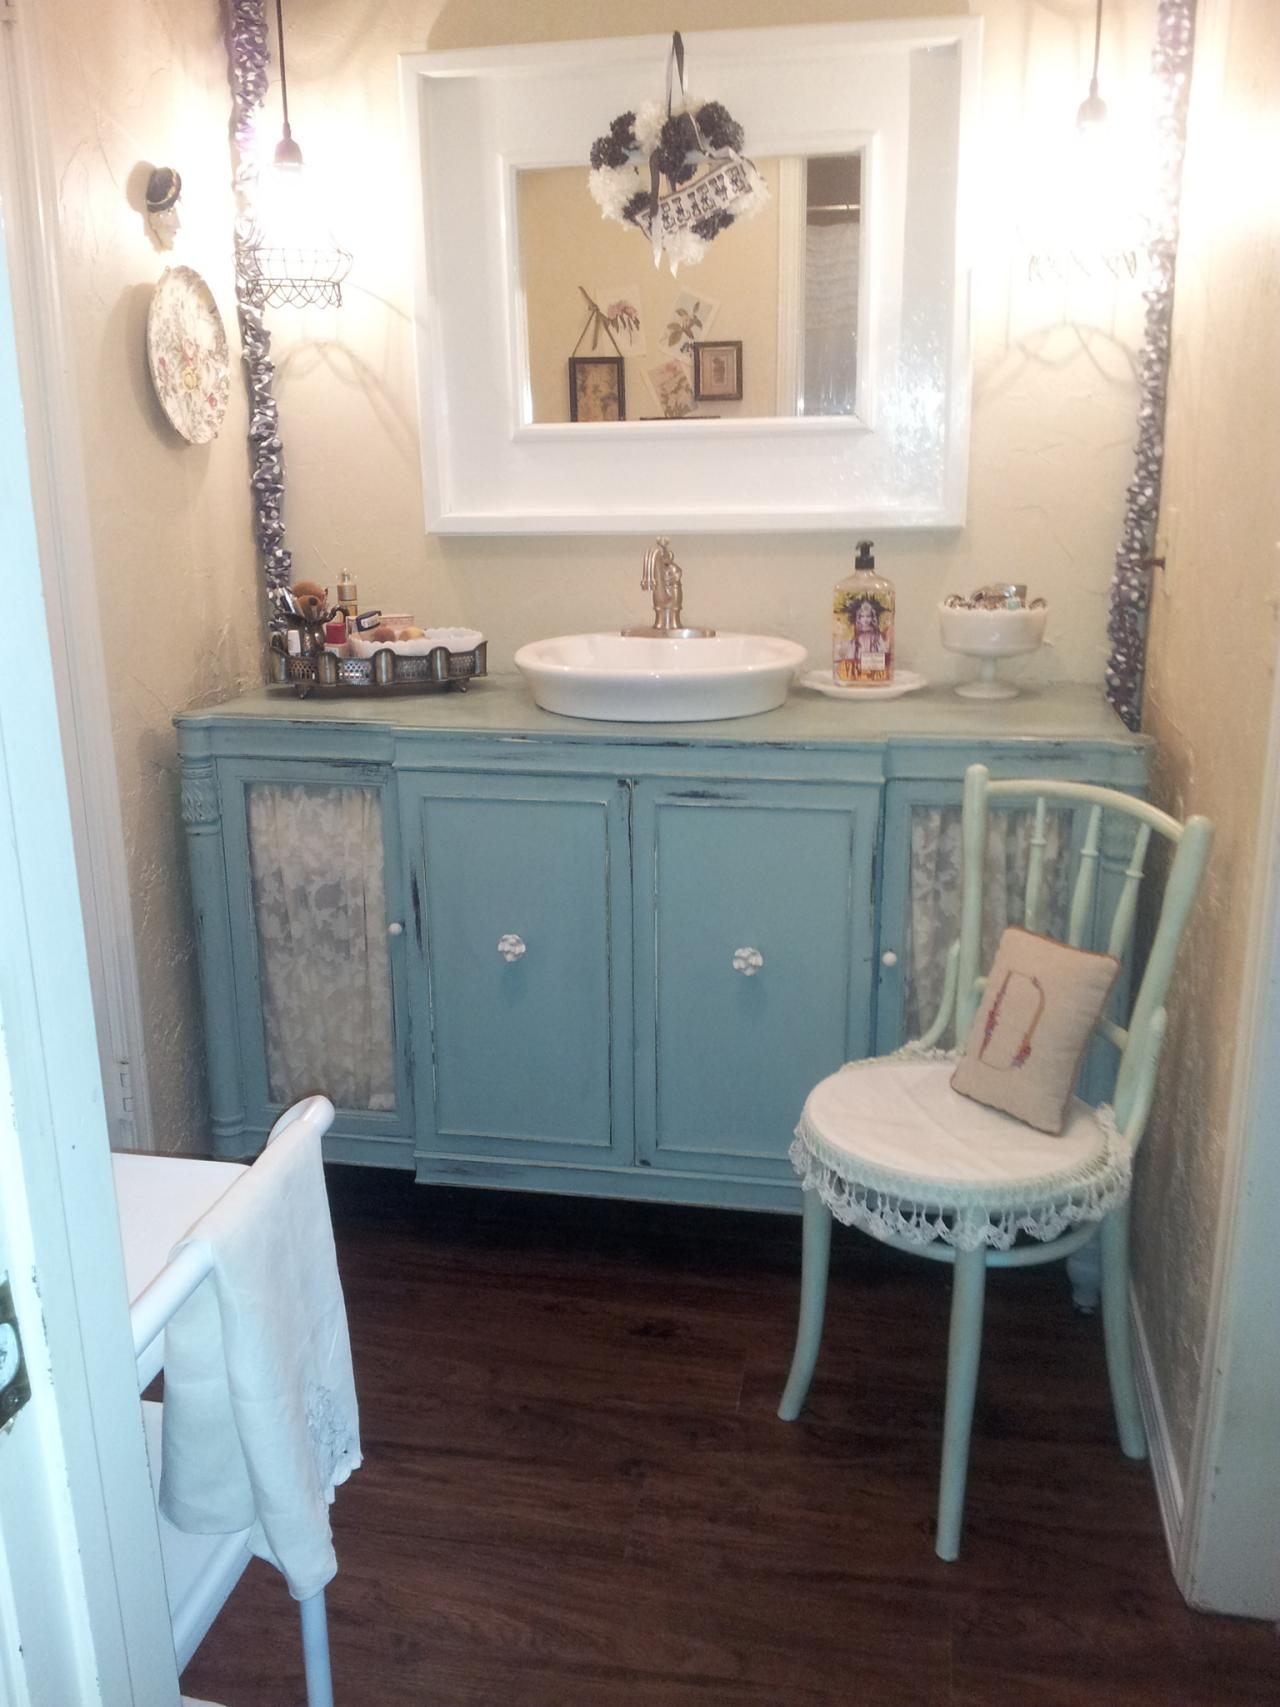 Country Bathroom Vanities HGTV - Blue bathroom vanity cabinet for bathroom decor ideas